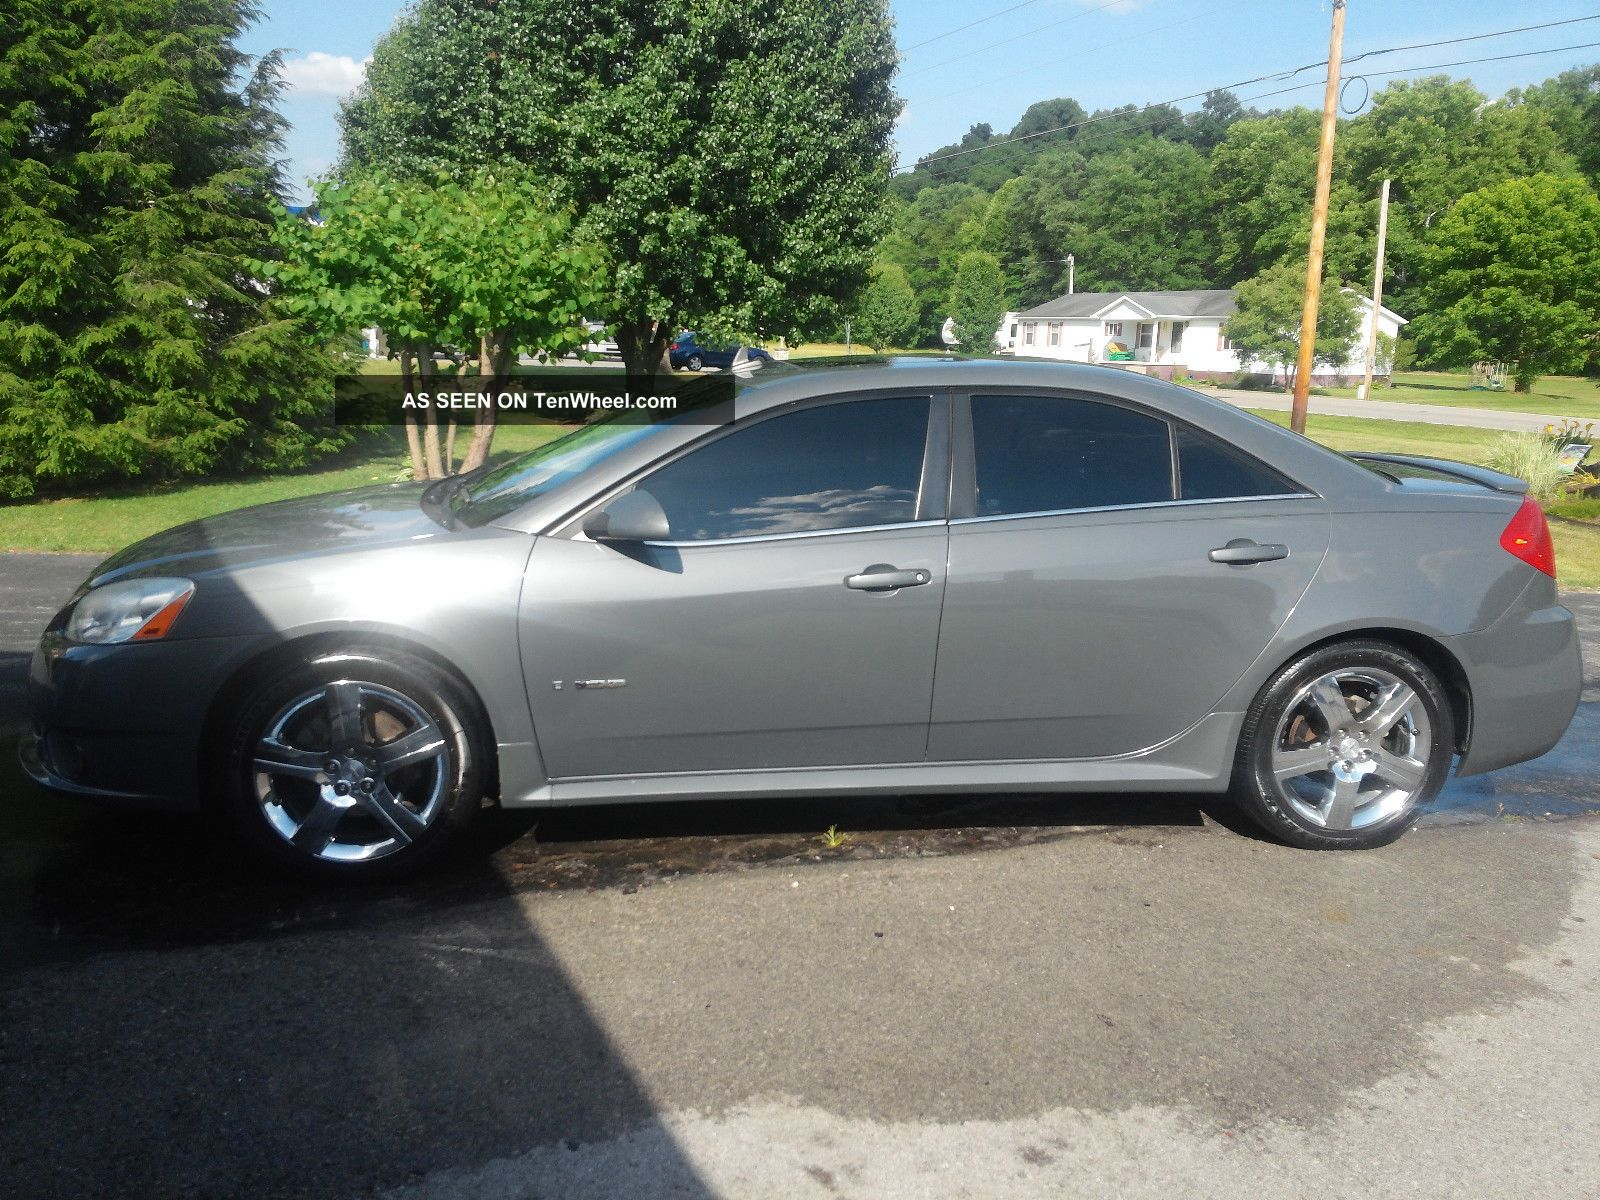 2008 Pontiac G6 Gxp Sedan 4 Door 3 6l